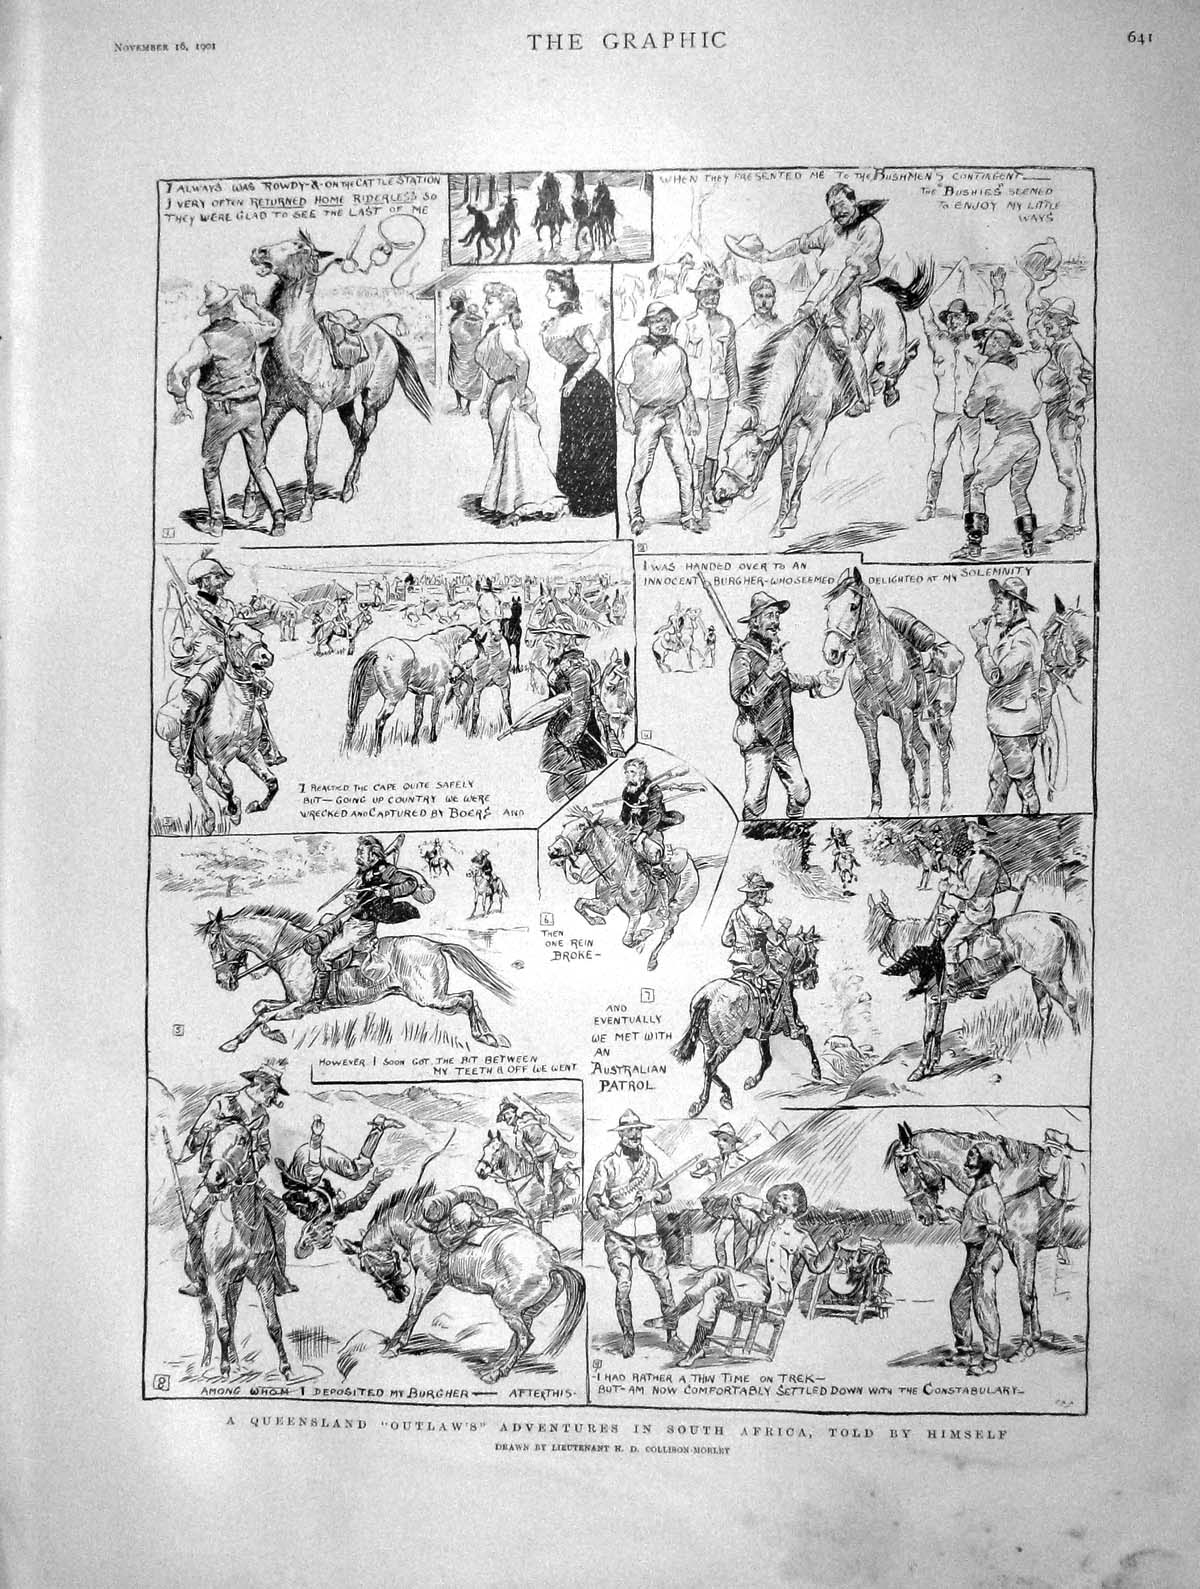 [Print 1901 Queensland Outlaw Adventures South Africa Story 641M164 Old Original]